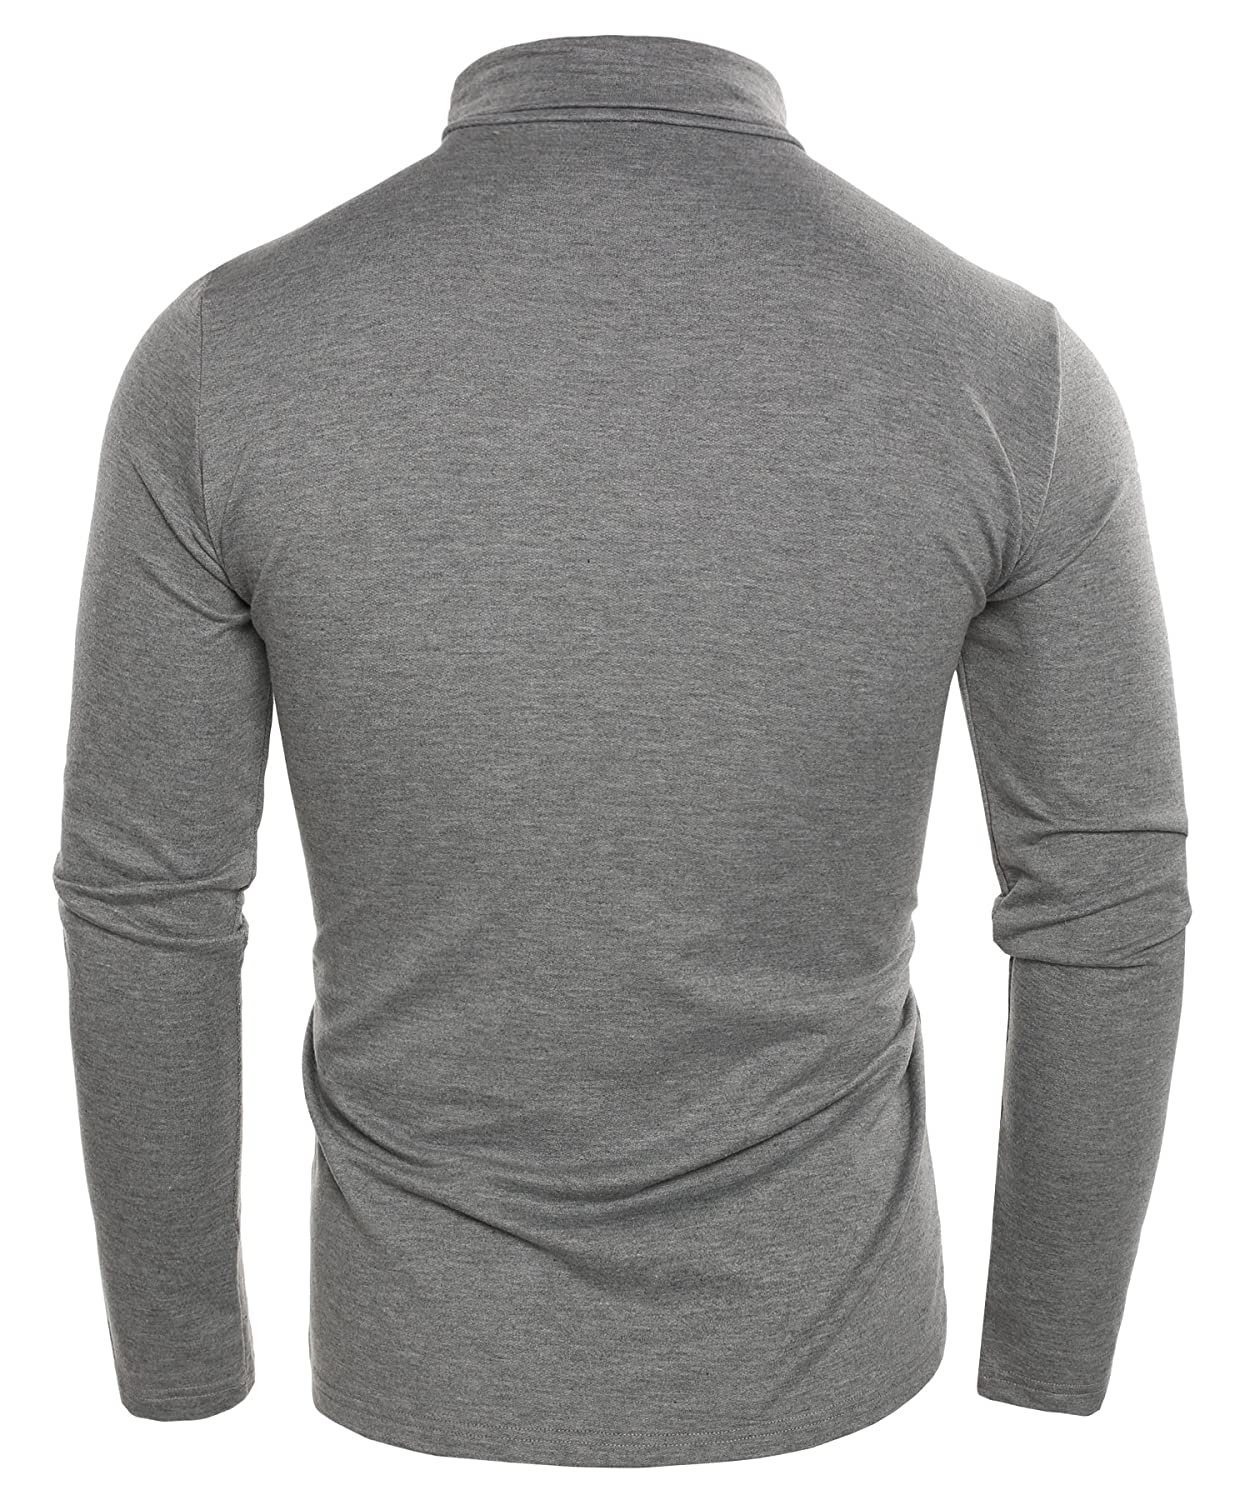 Coofandy Mens T Shirts Casual Slim Fit Basic Thermal Long Sleeve Turtleneck Solid Pullover Top